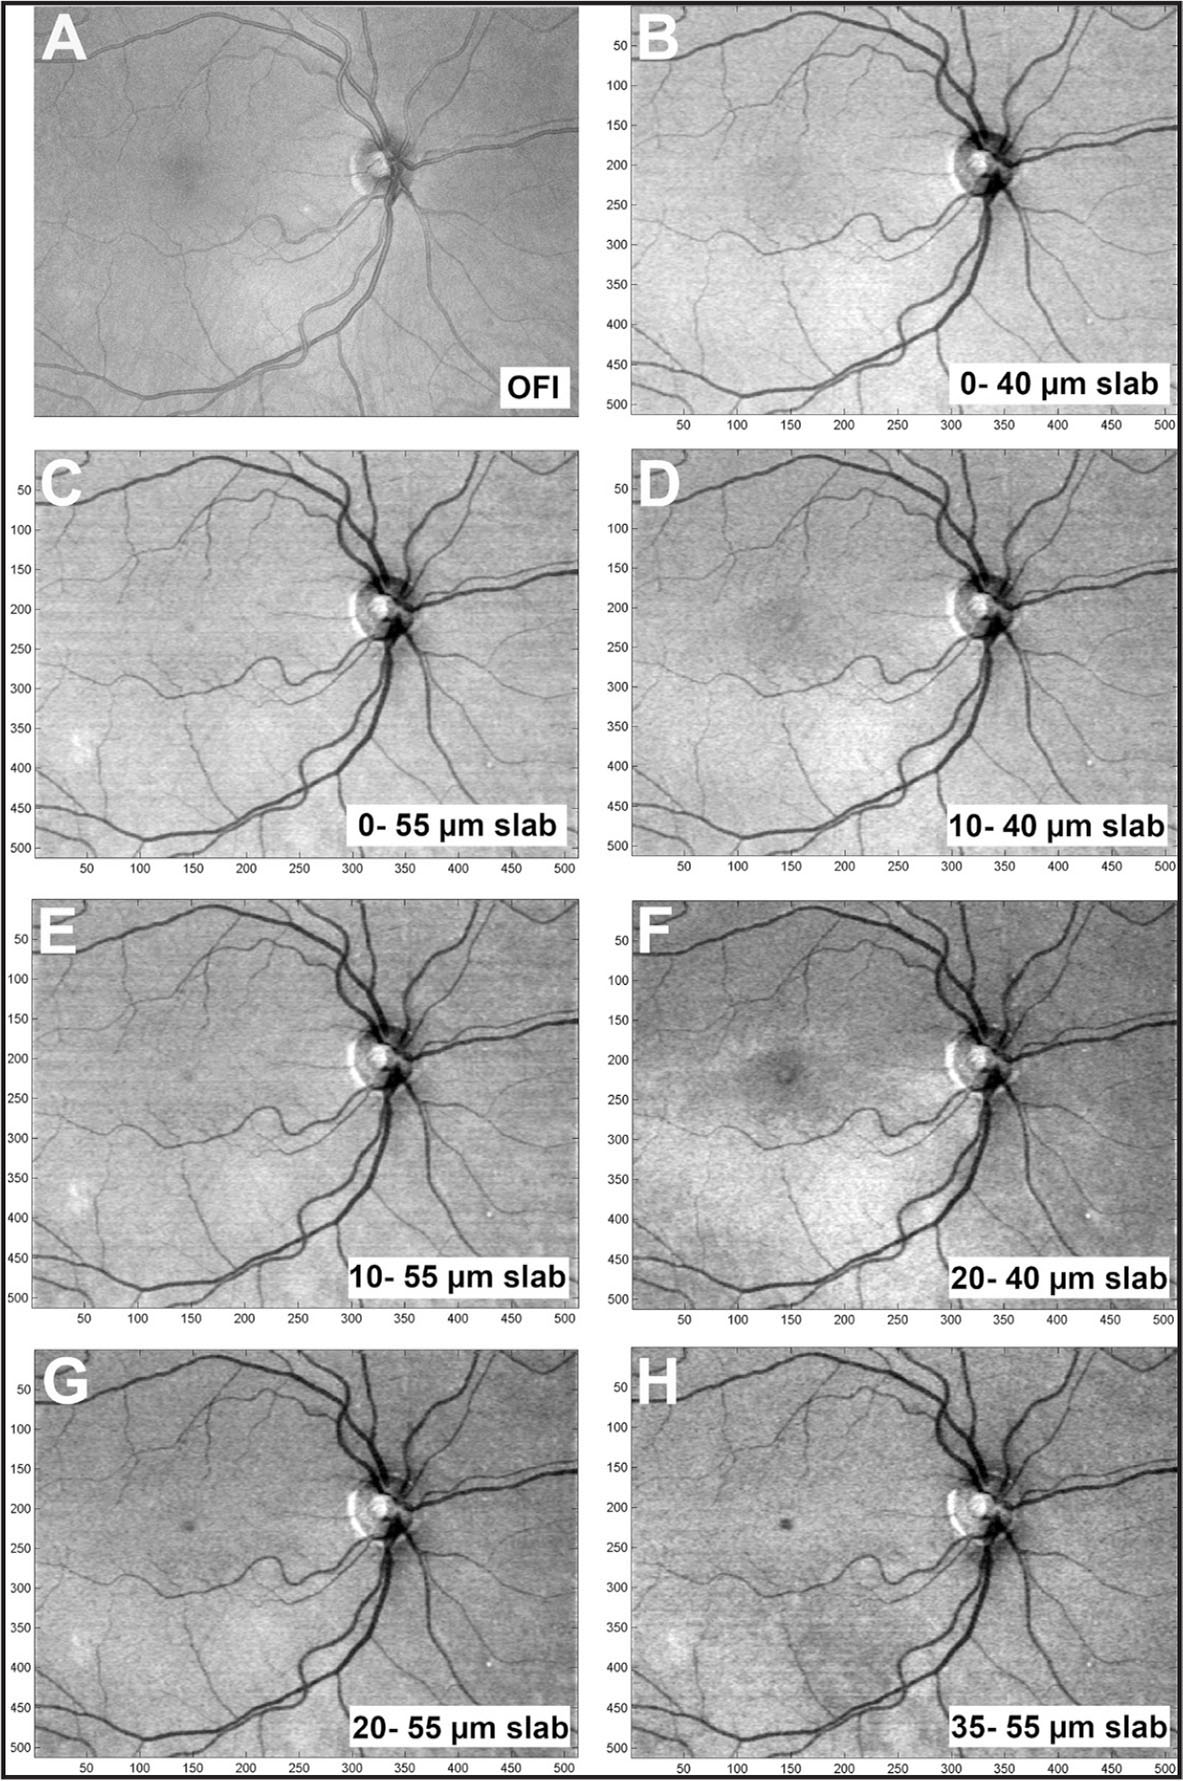 Swept-source OCT widefield en face images (9 × 12 mm) showing different intraretinal slabs of a normal right eye in a 57-year-old man. The en face images correspond to the slabs shown in Figures 1 and 2. (A) Full-thickness OCT fundus images. (B) Widefield en face image of a 40-µm thick slab, located 0 to 40 µm above the retinal pigment epithelium (RPE). (C) Widefield en face image of a 55 µm thick slab, located 0 to 55 µm above the RPE. (D) Widefield en face image of a 30 µm thick slab, located 10 to 40 µm above the RPE. (E) Widefield en face image of a 45 µm thick slab, located 10 to 55 µm above the RPE. (F) Widefield en face image of a 20 µm thick slab, located 20 to 40 µm above the RPE. (G) Widefield en face of a 35 µm thick slab, located 20 to 55 µm above the RPE. (H) Widefield en face image of a 20 µm thick slab, located 35 to 55 µm above the RPE.